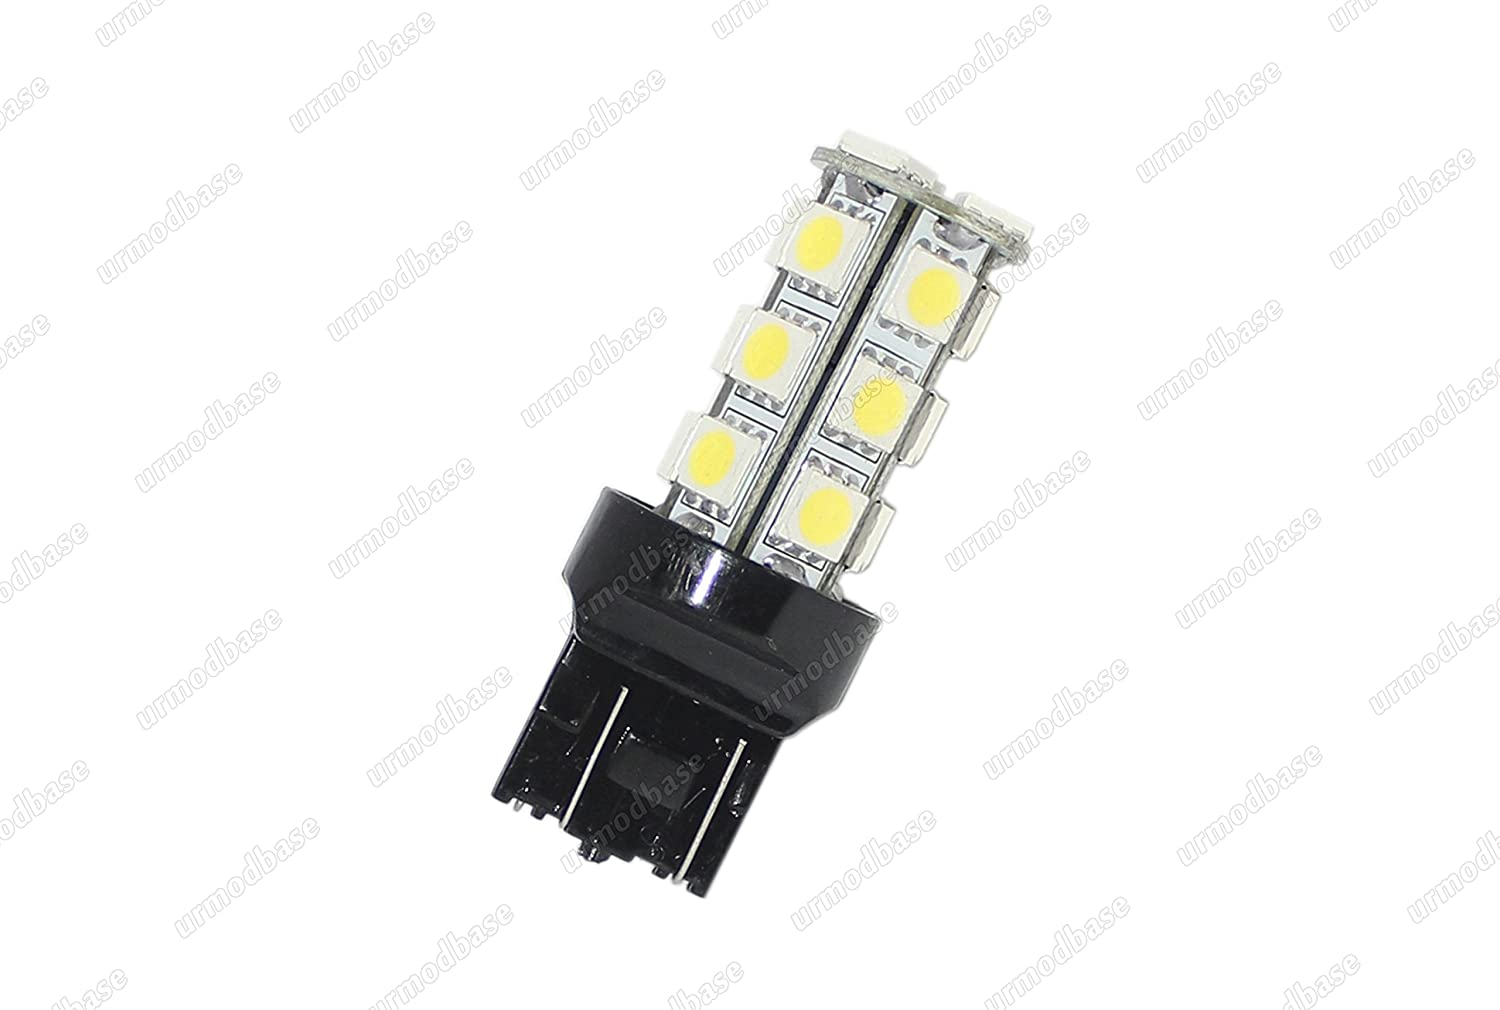 urmodbase T20 580 W21 5W 7443 LED SMD Xenon White DRL Daytime Running Lights Parking Side Lamps Bulbs ONLY FOR THE VEHICLES IN DESCRIPTION